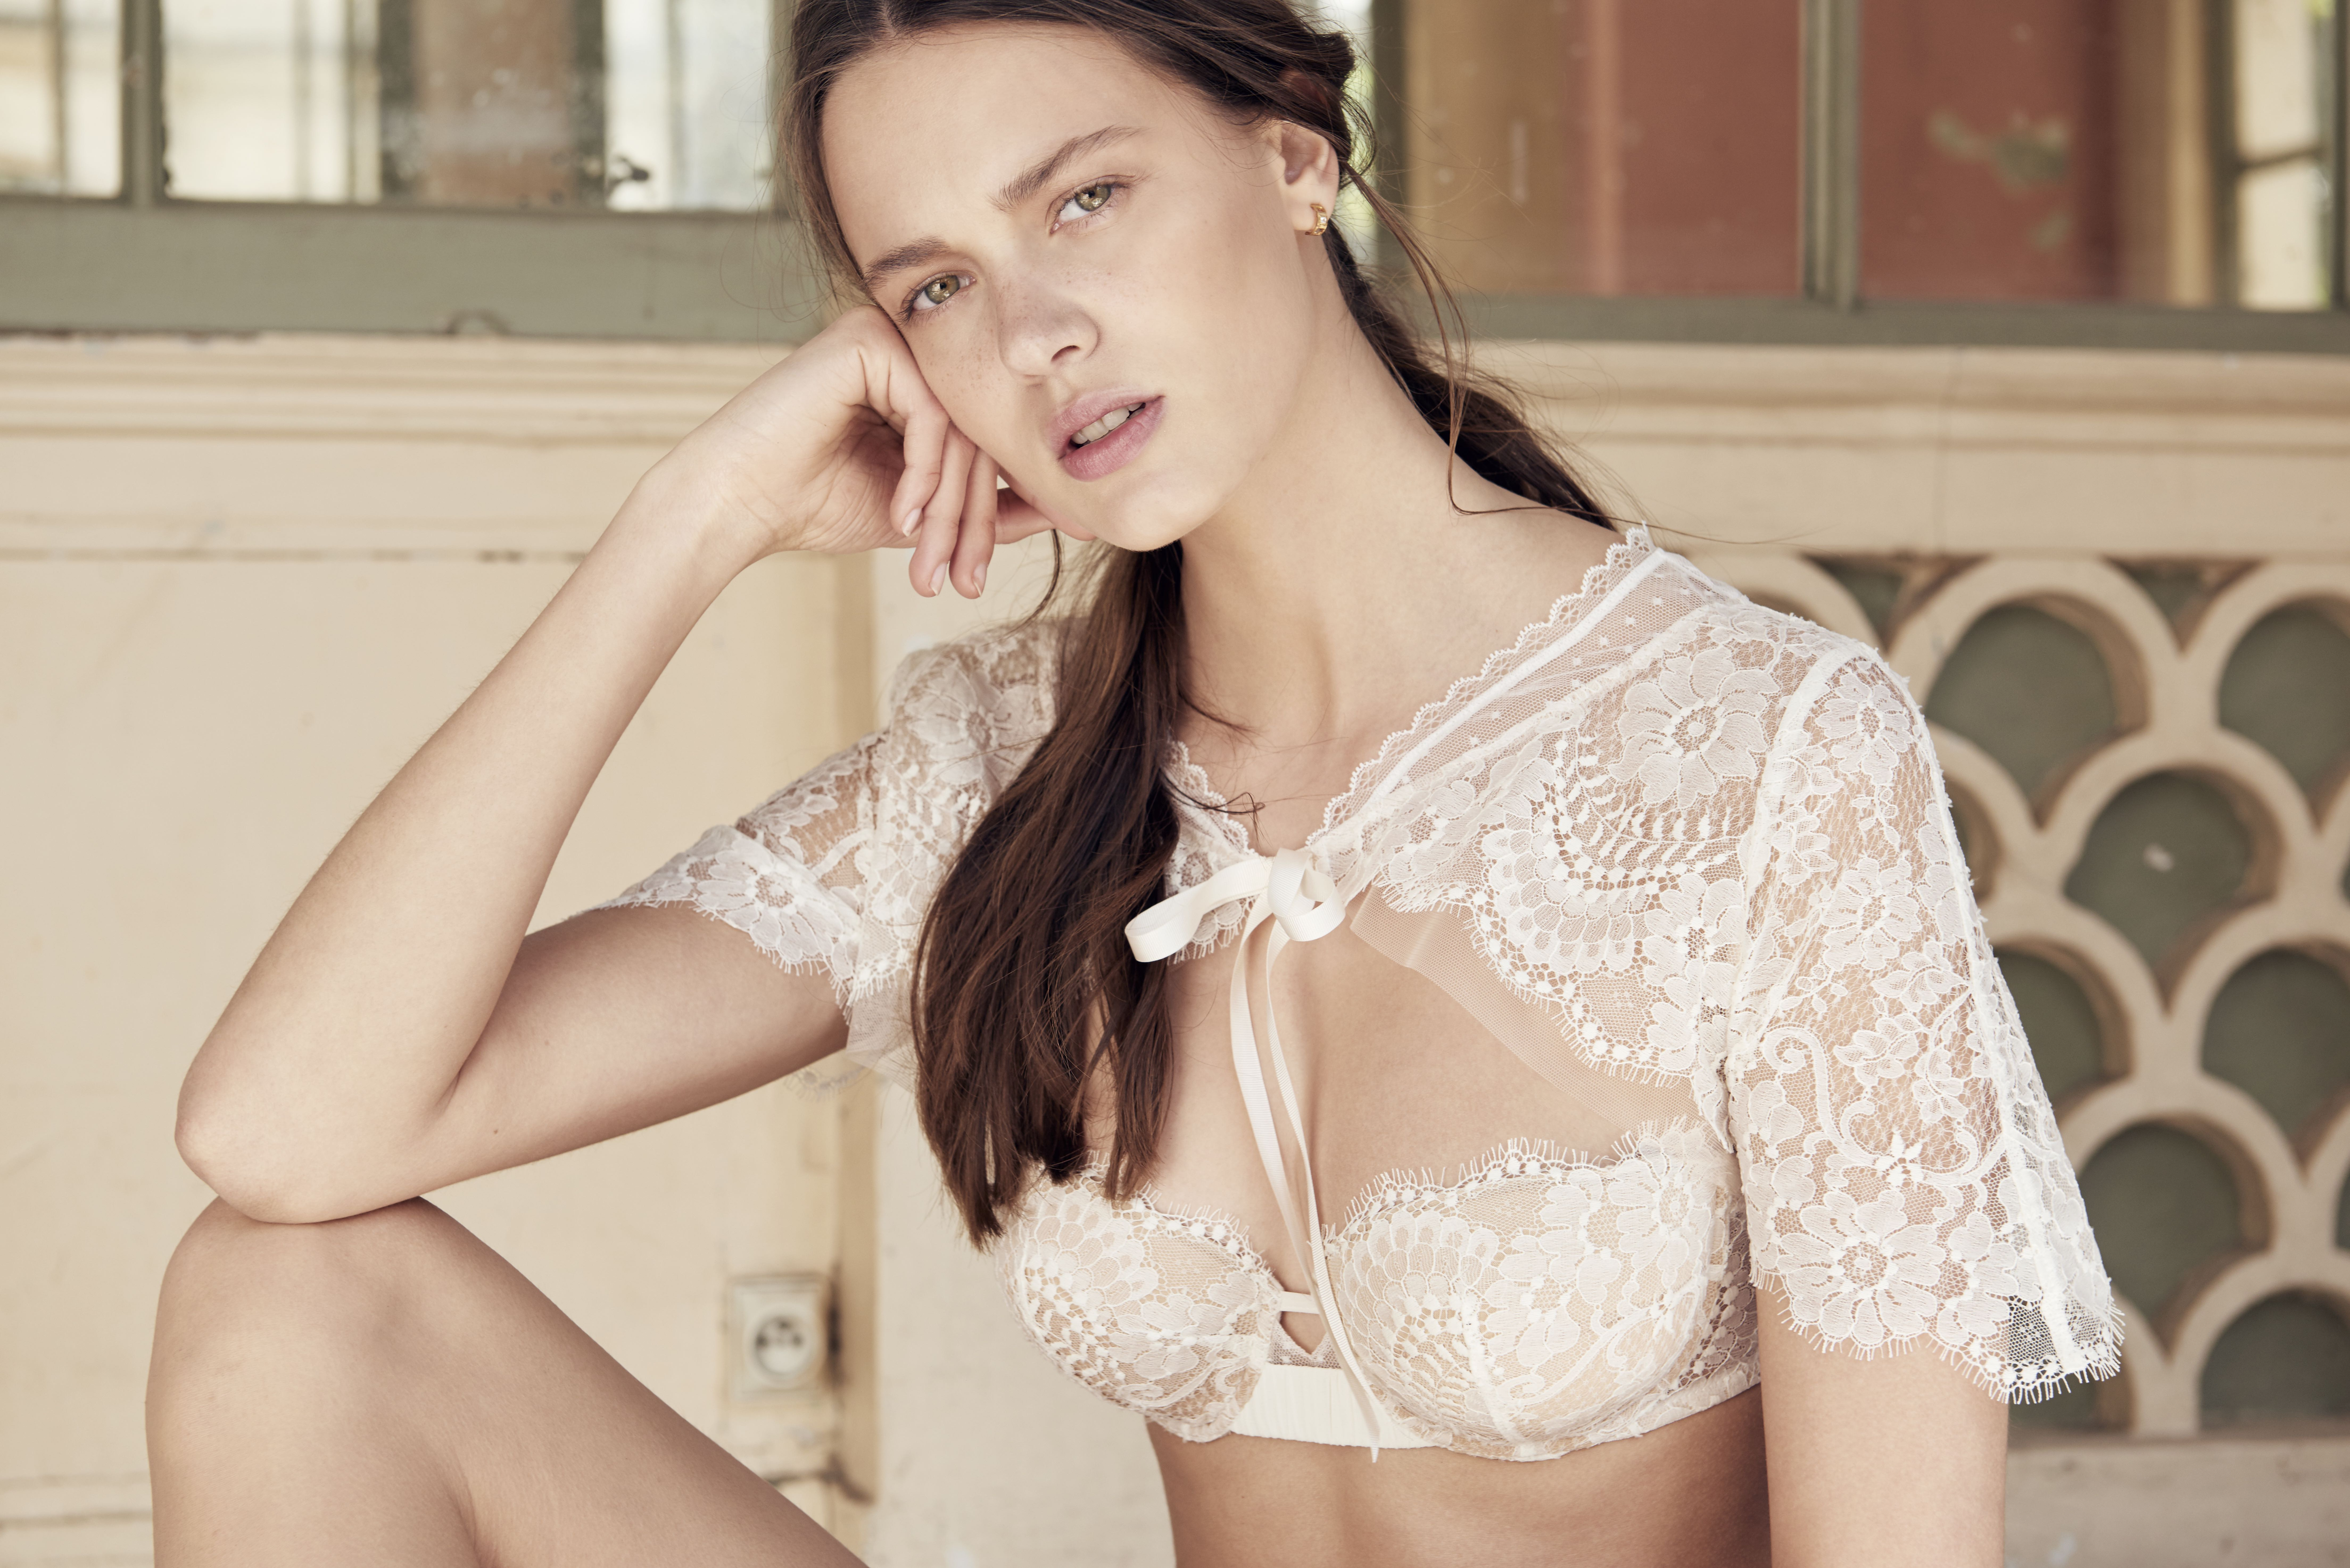 Lingerie Française: Why I'm Incorporating French Lingerie Into My Daily Wardrobe